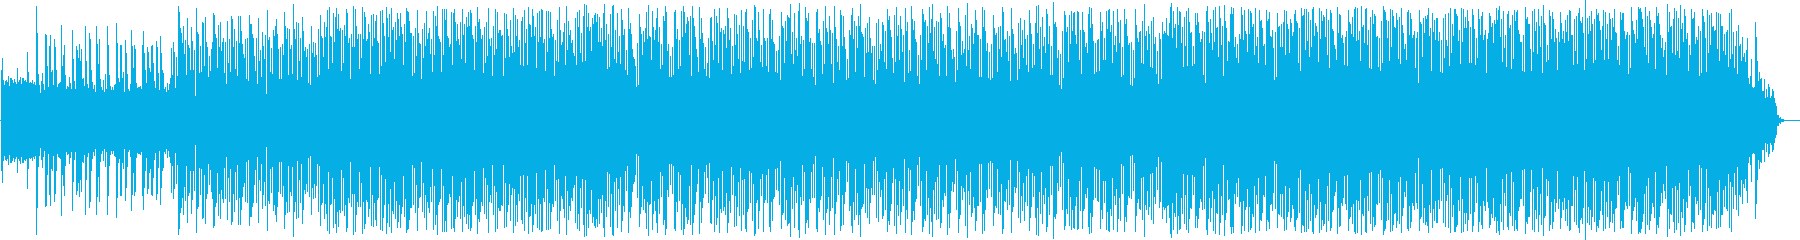 Slow and Asian synthesizer songs's reproduced waveform